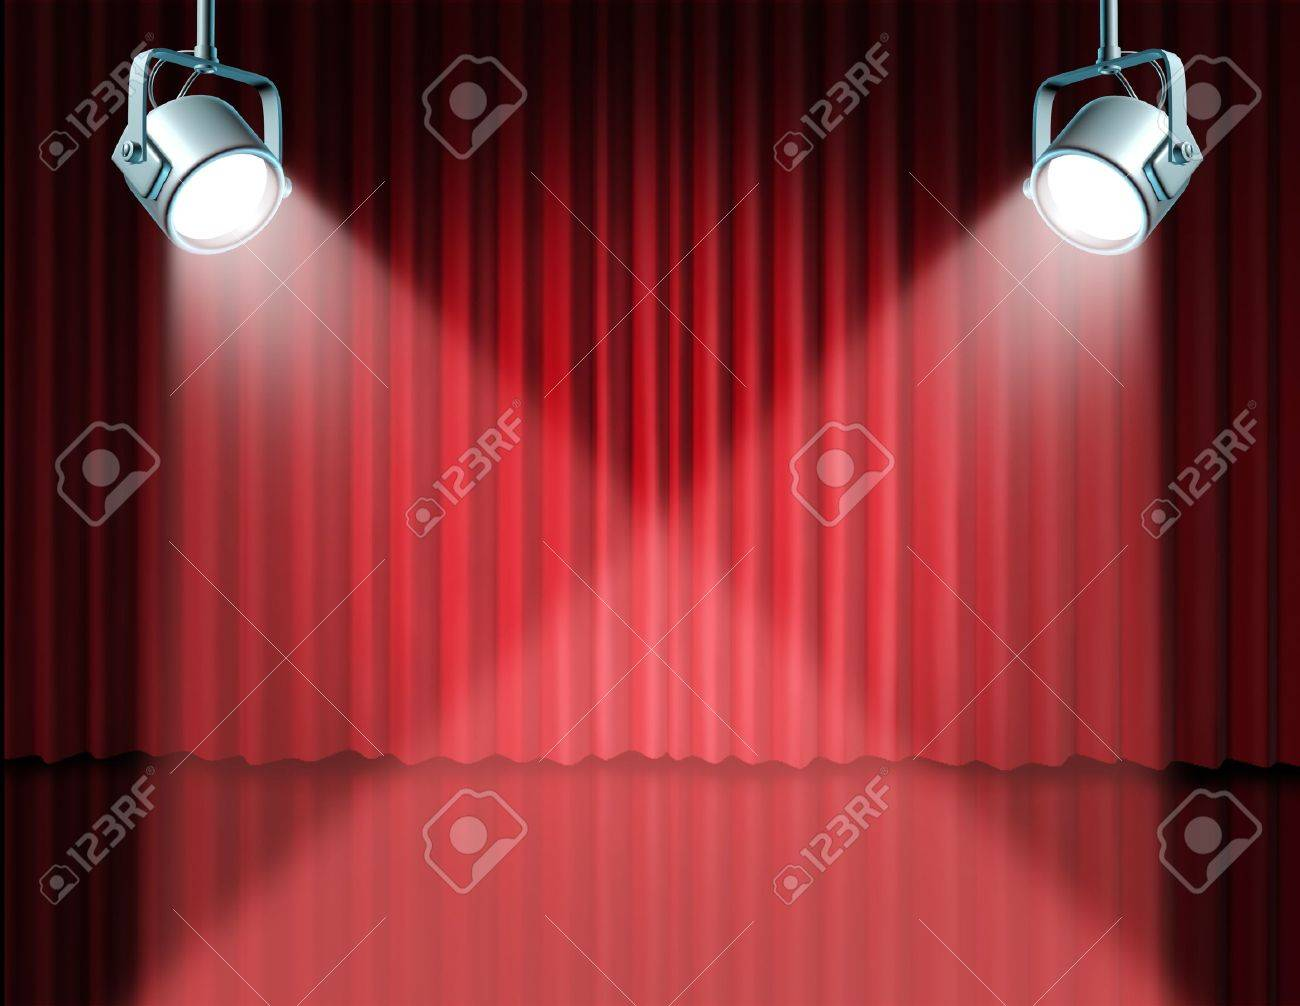 Empty stage curtains with lights - Theatrical Stage In The Spotlight Featuring Concept For The Theater Stage With Glowing Lights On